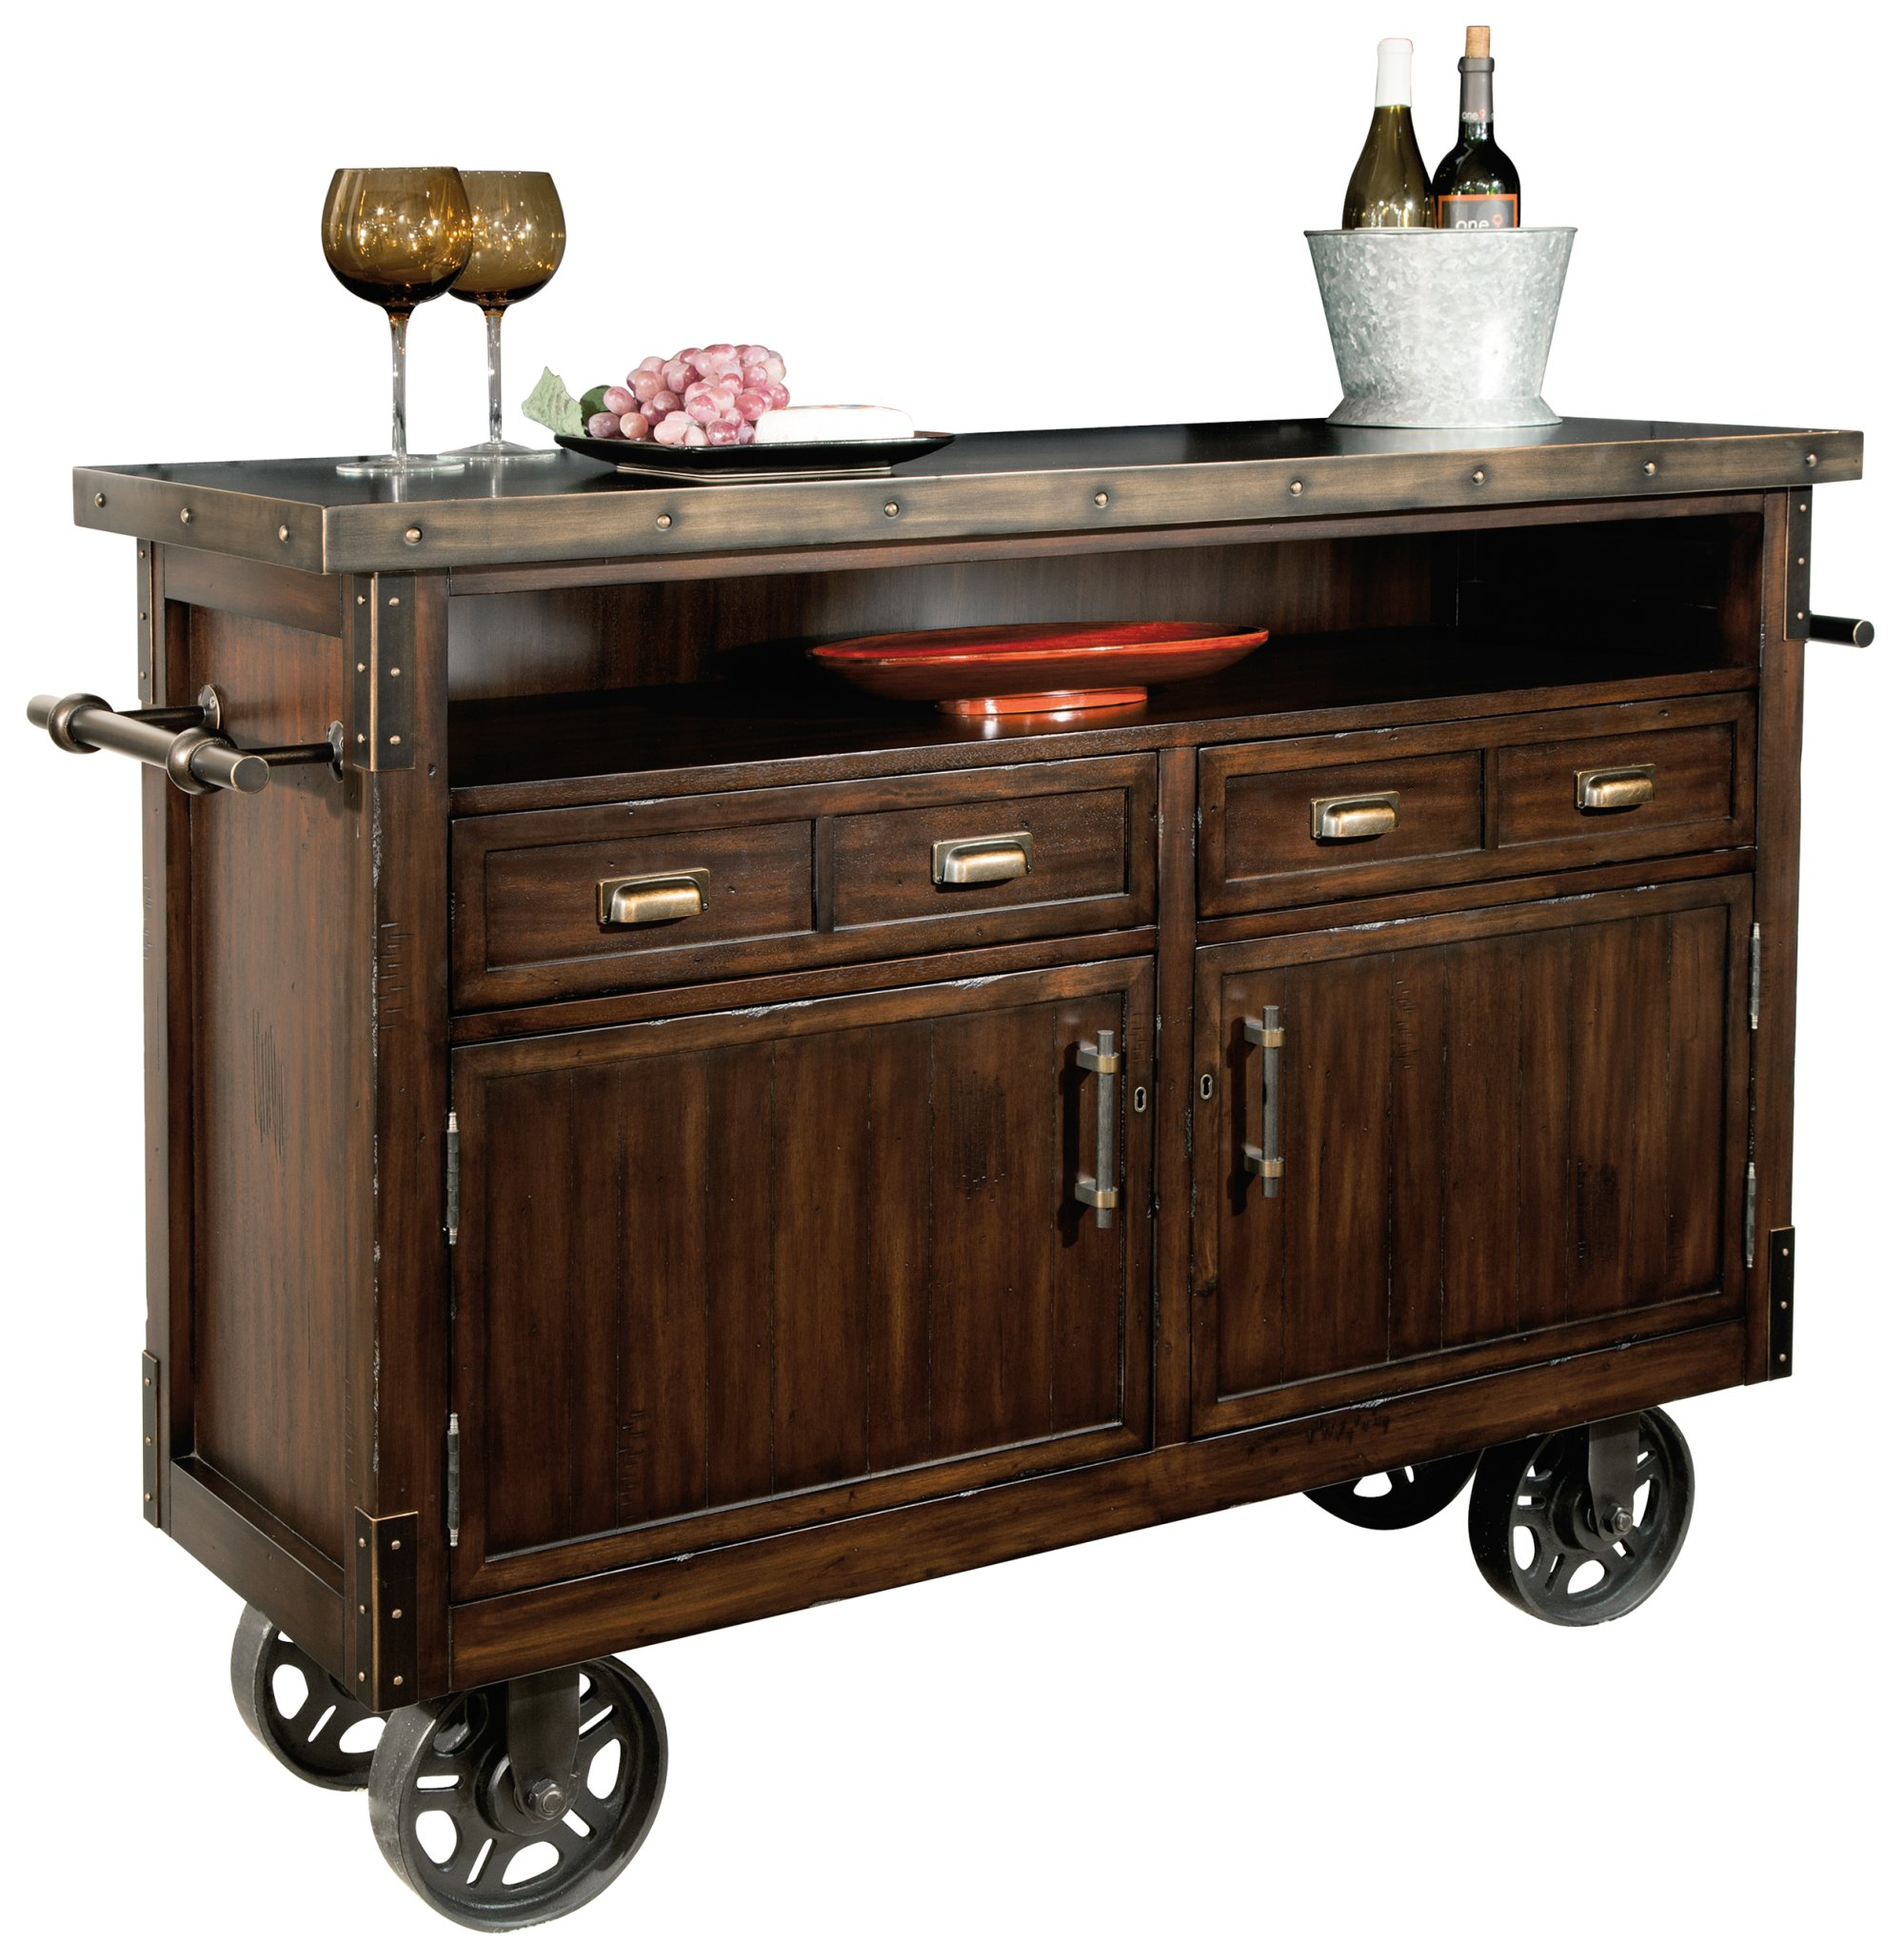 Howard Miller Barrow Wine and Bar Storage Console by Howard Miller